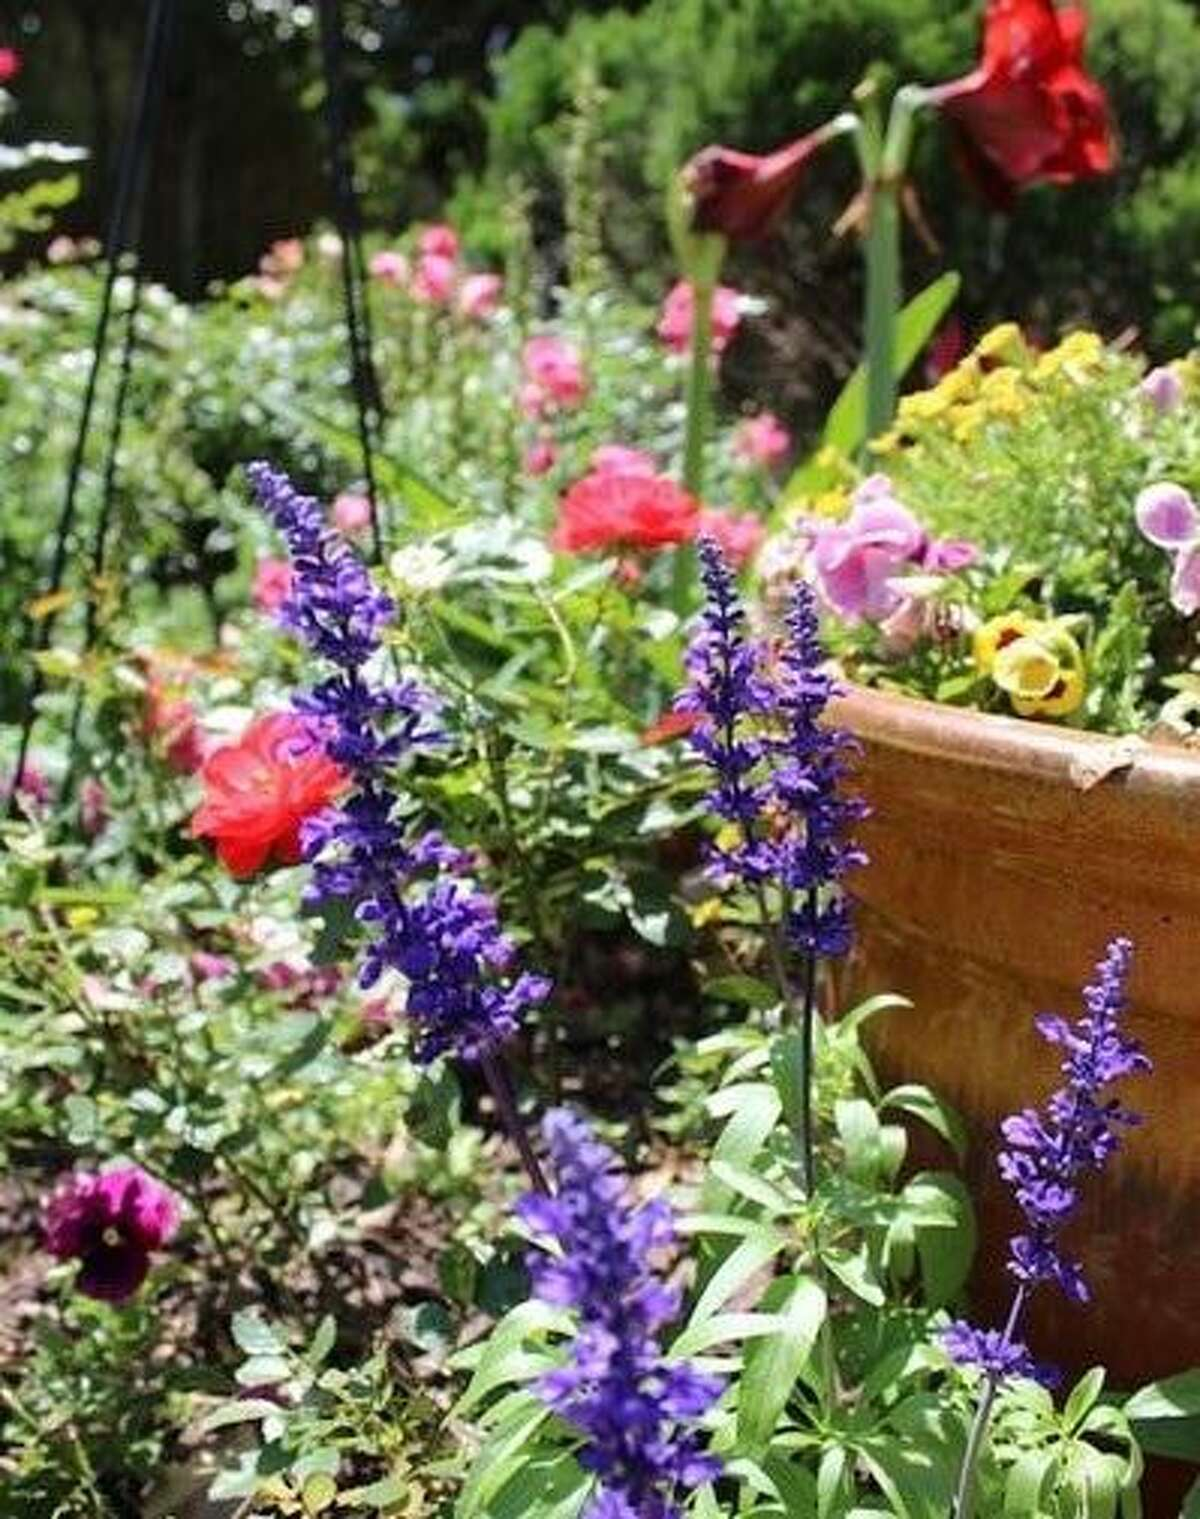 The Quail Valley Garden Club's Annual Spring Plant Sale will be held from 10 a.m. to 2 p.m. Saturday, May 1, at Tee Garden, 2880 La Quinta Drive, Missouri City.